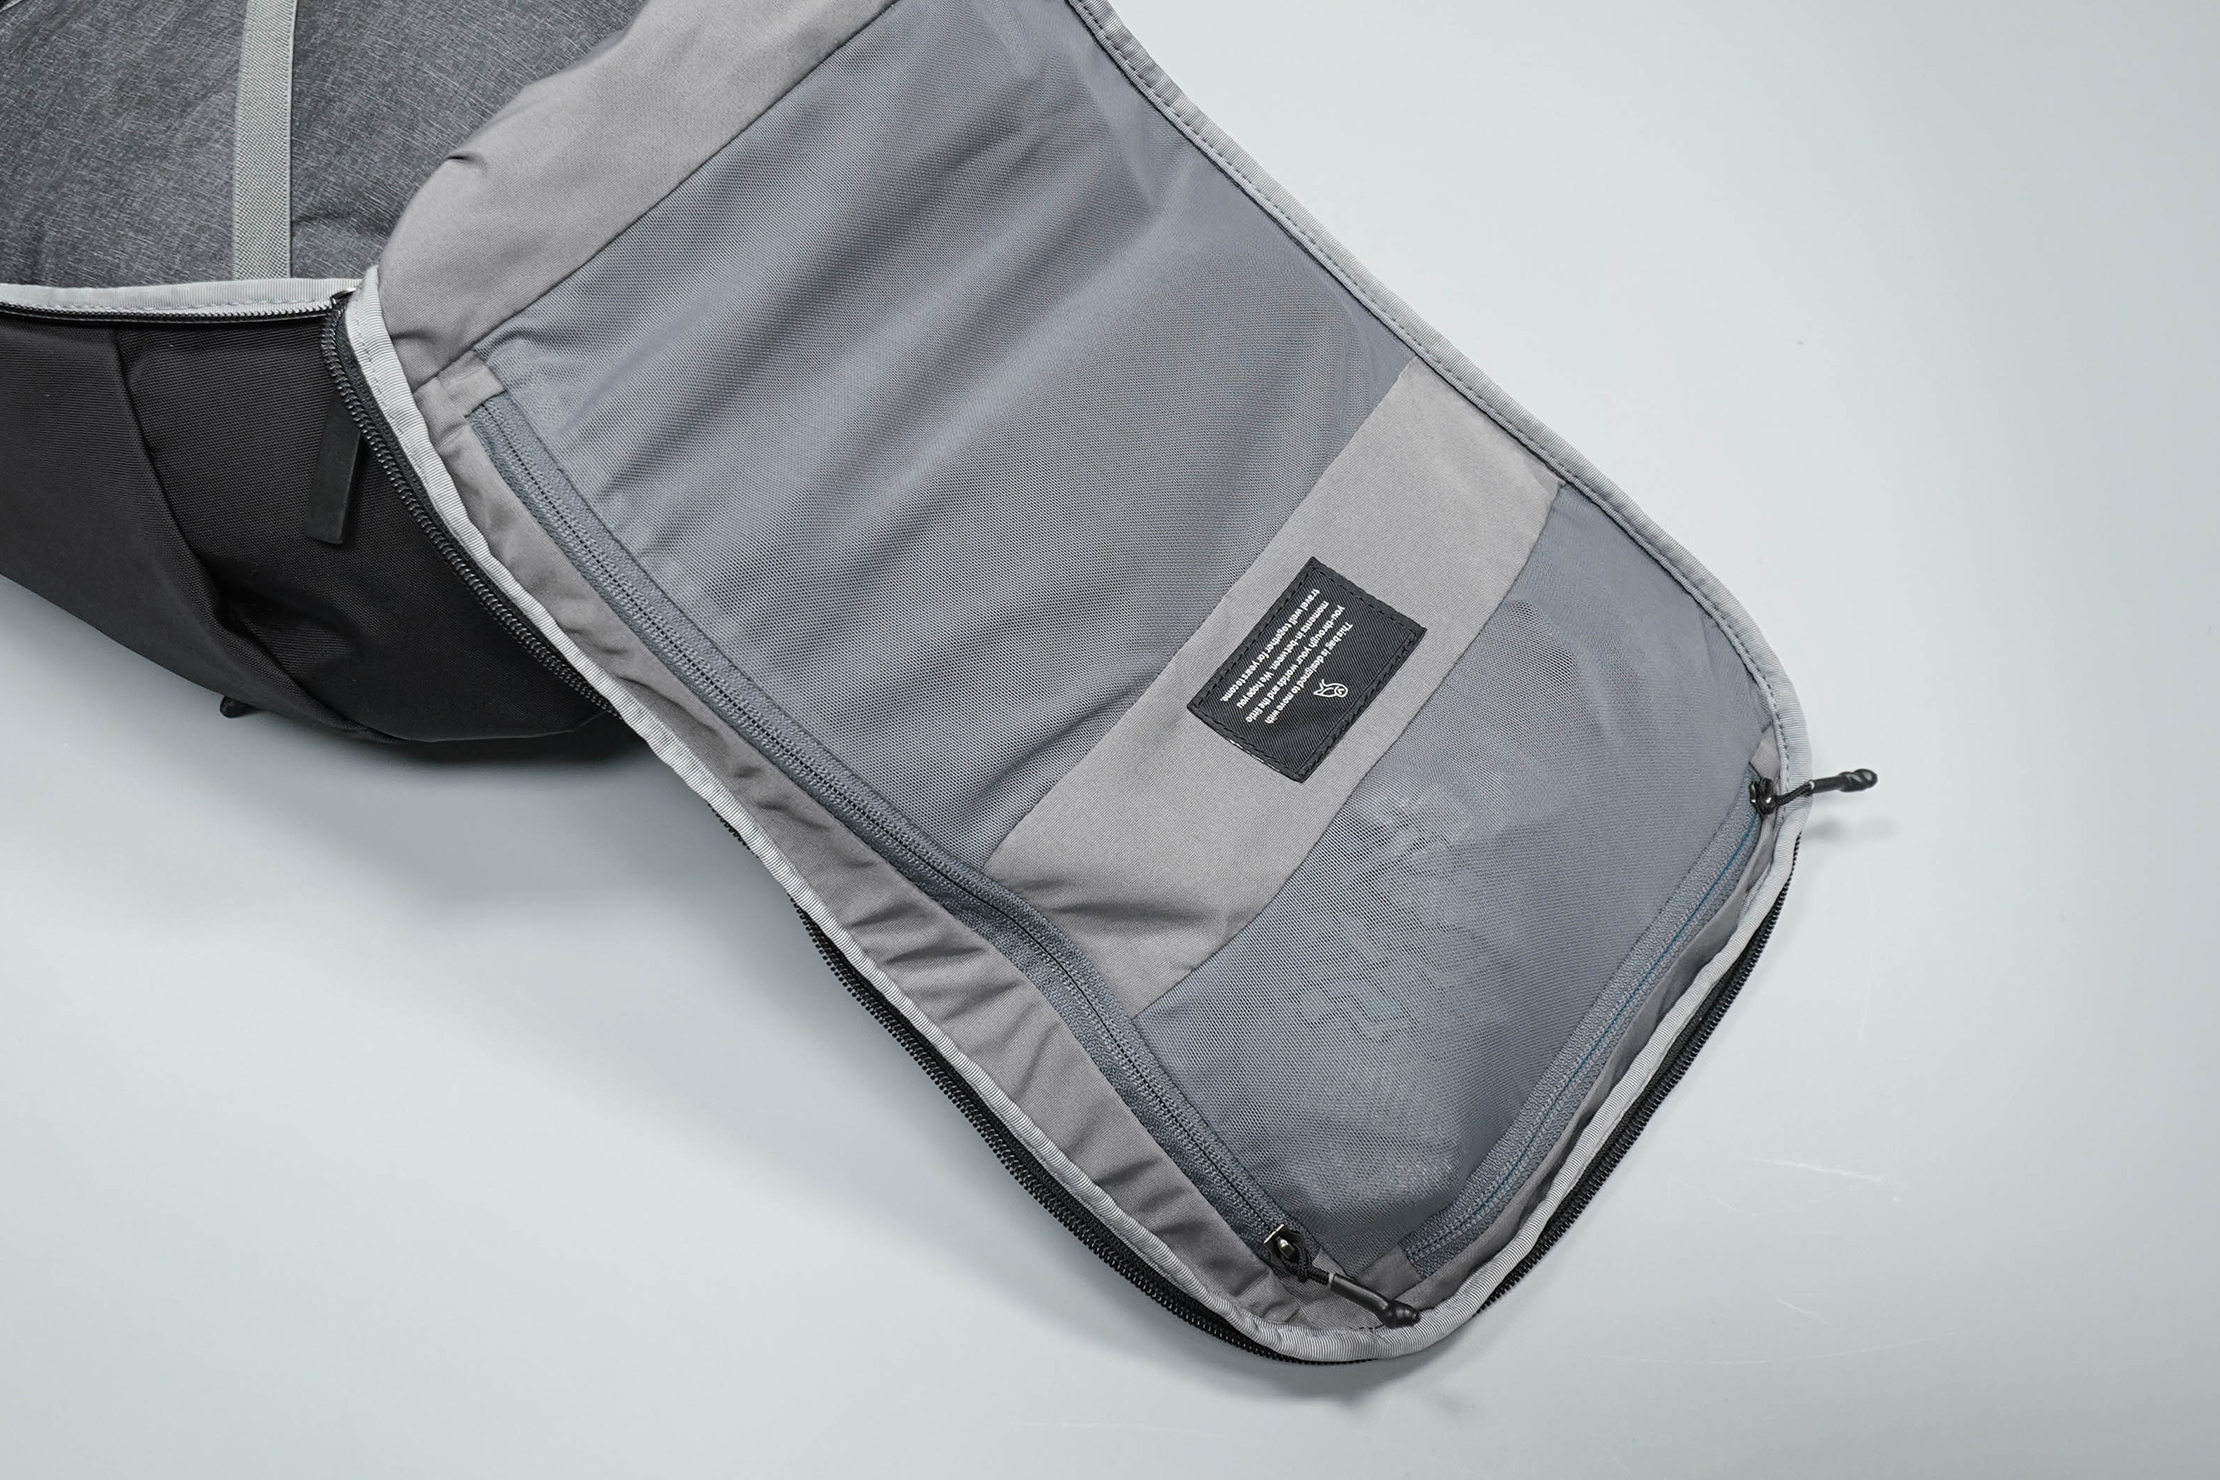 Bellroy Transit Backpack Mesh Pockets